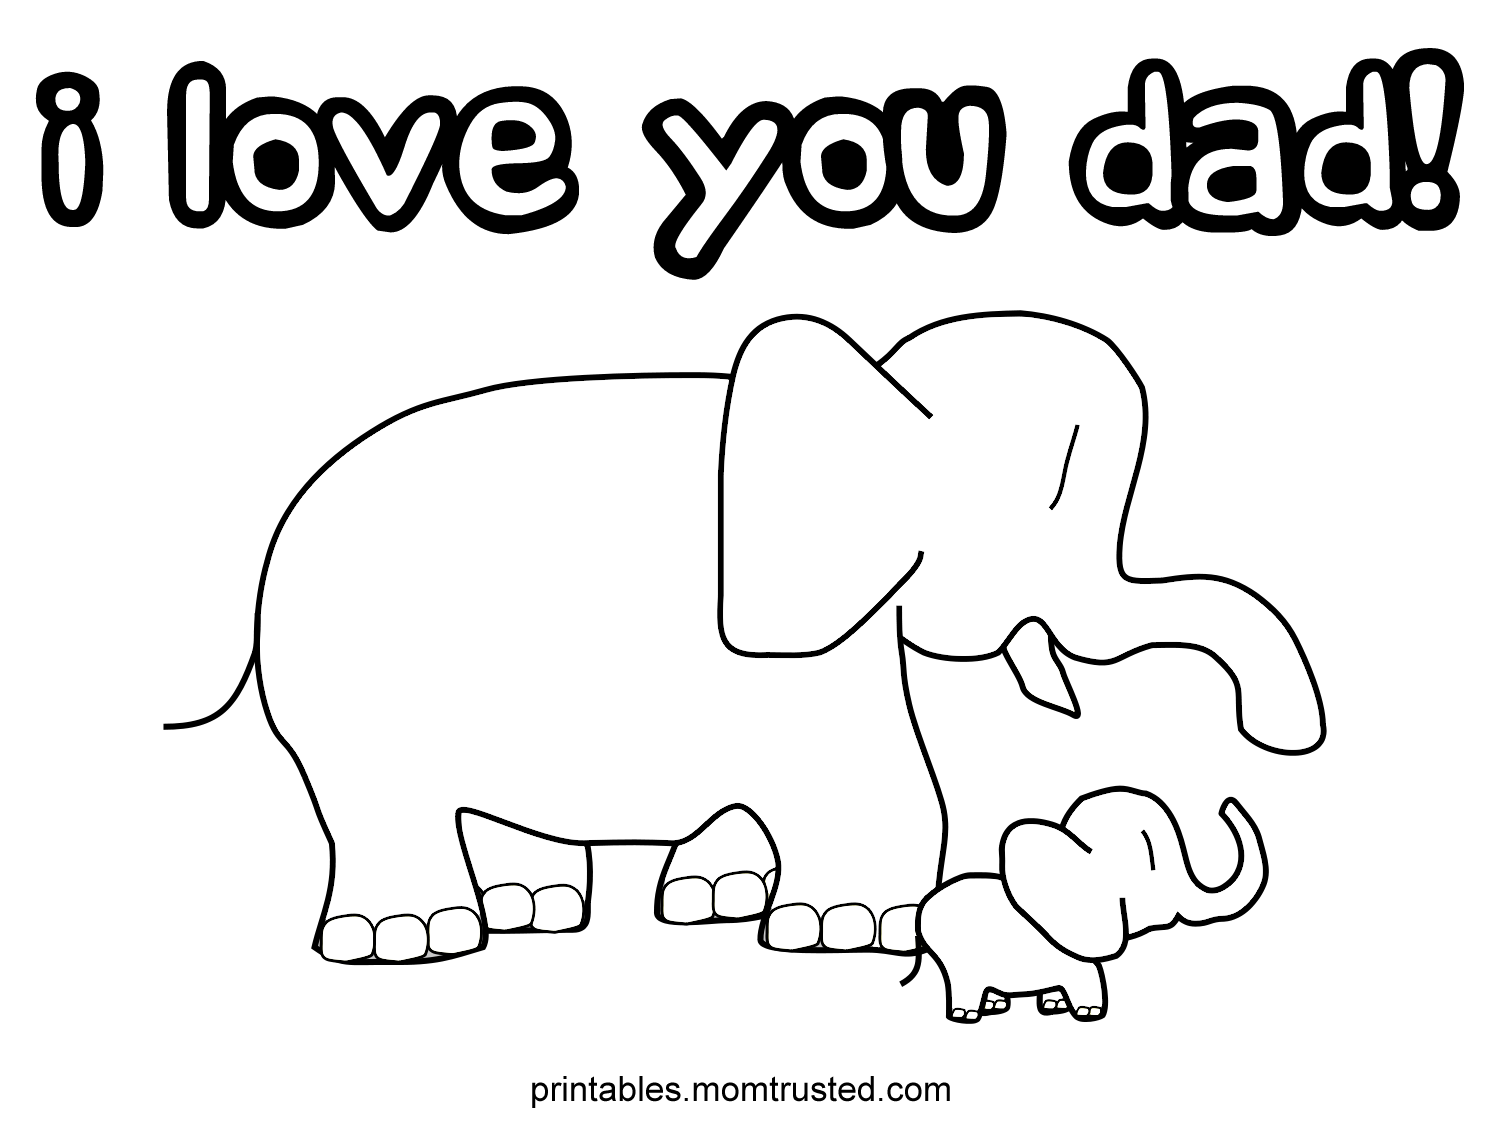 Paw patrol coloring pages happy birthday - Happy Birthday Daddy Coloring Pages